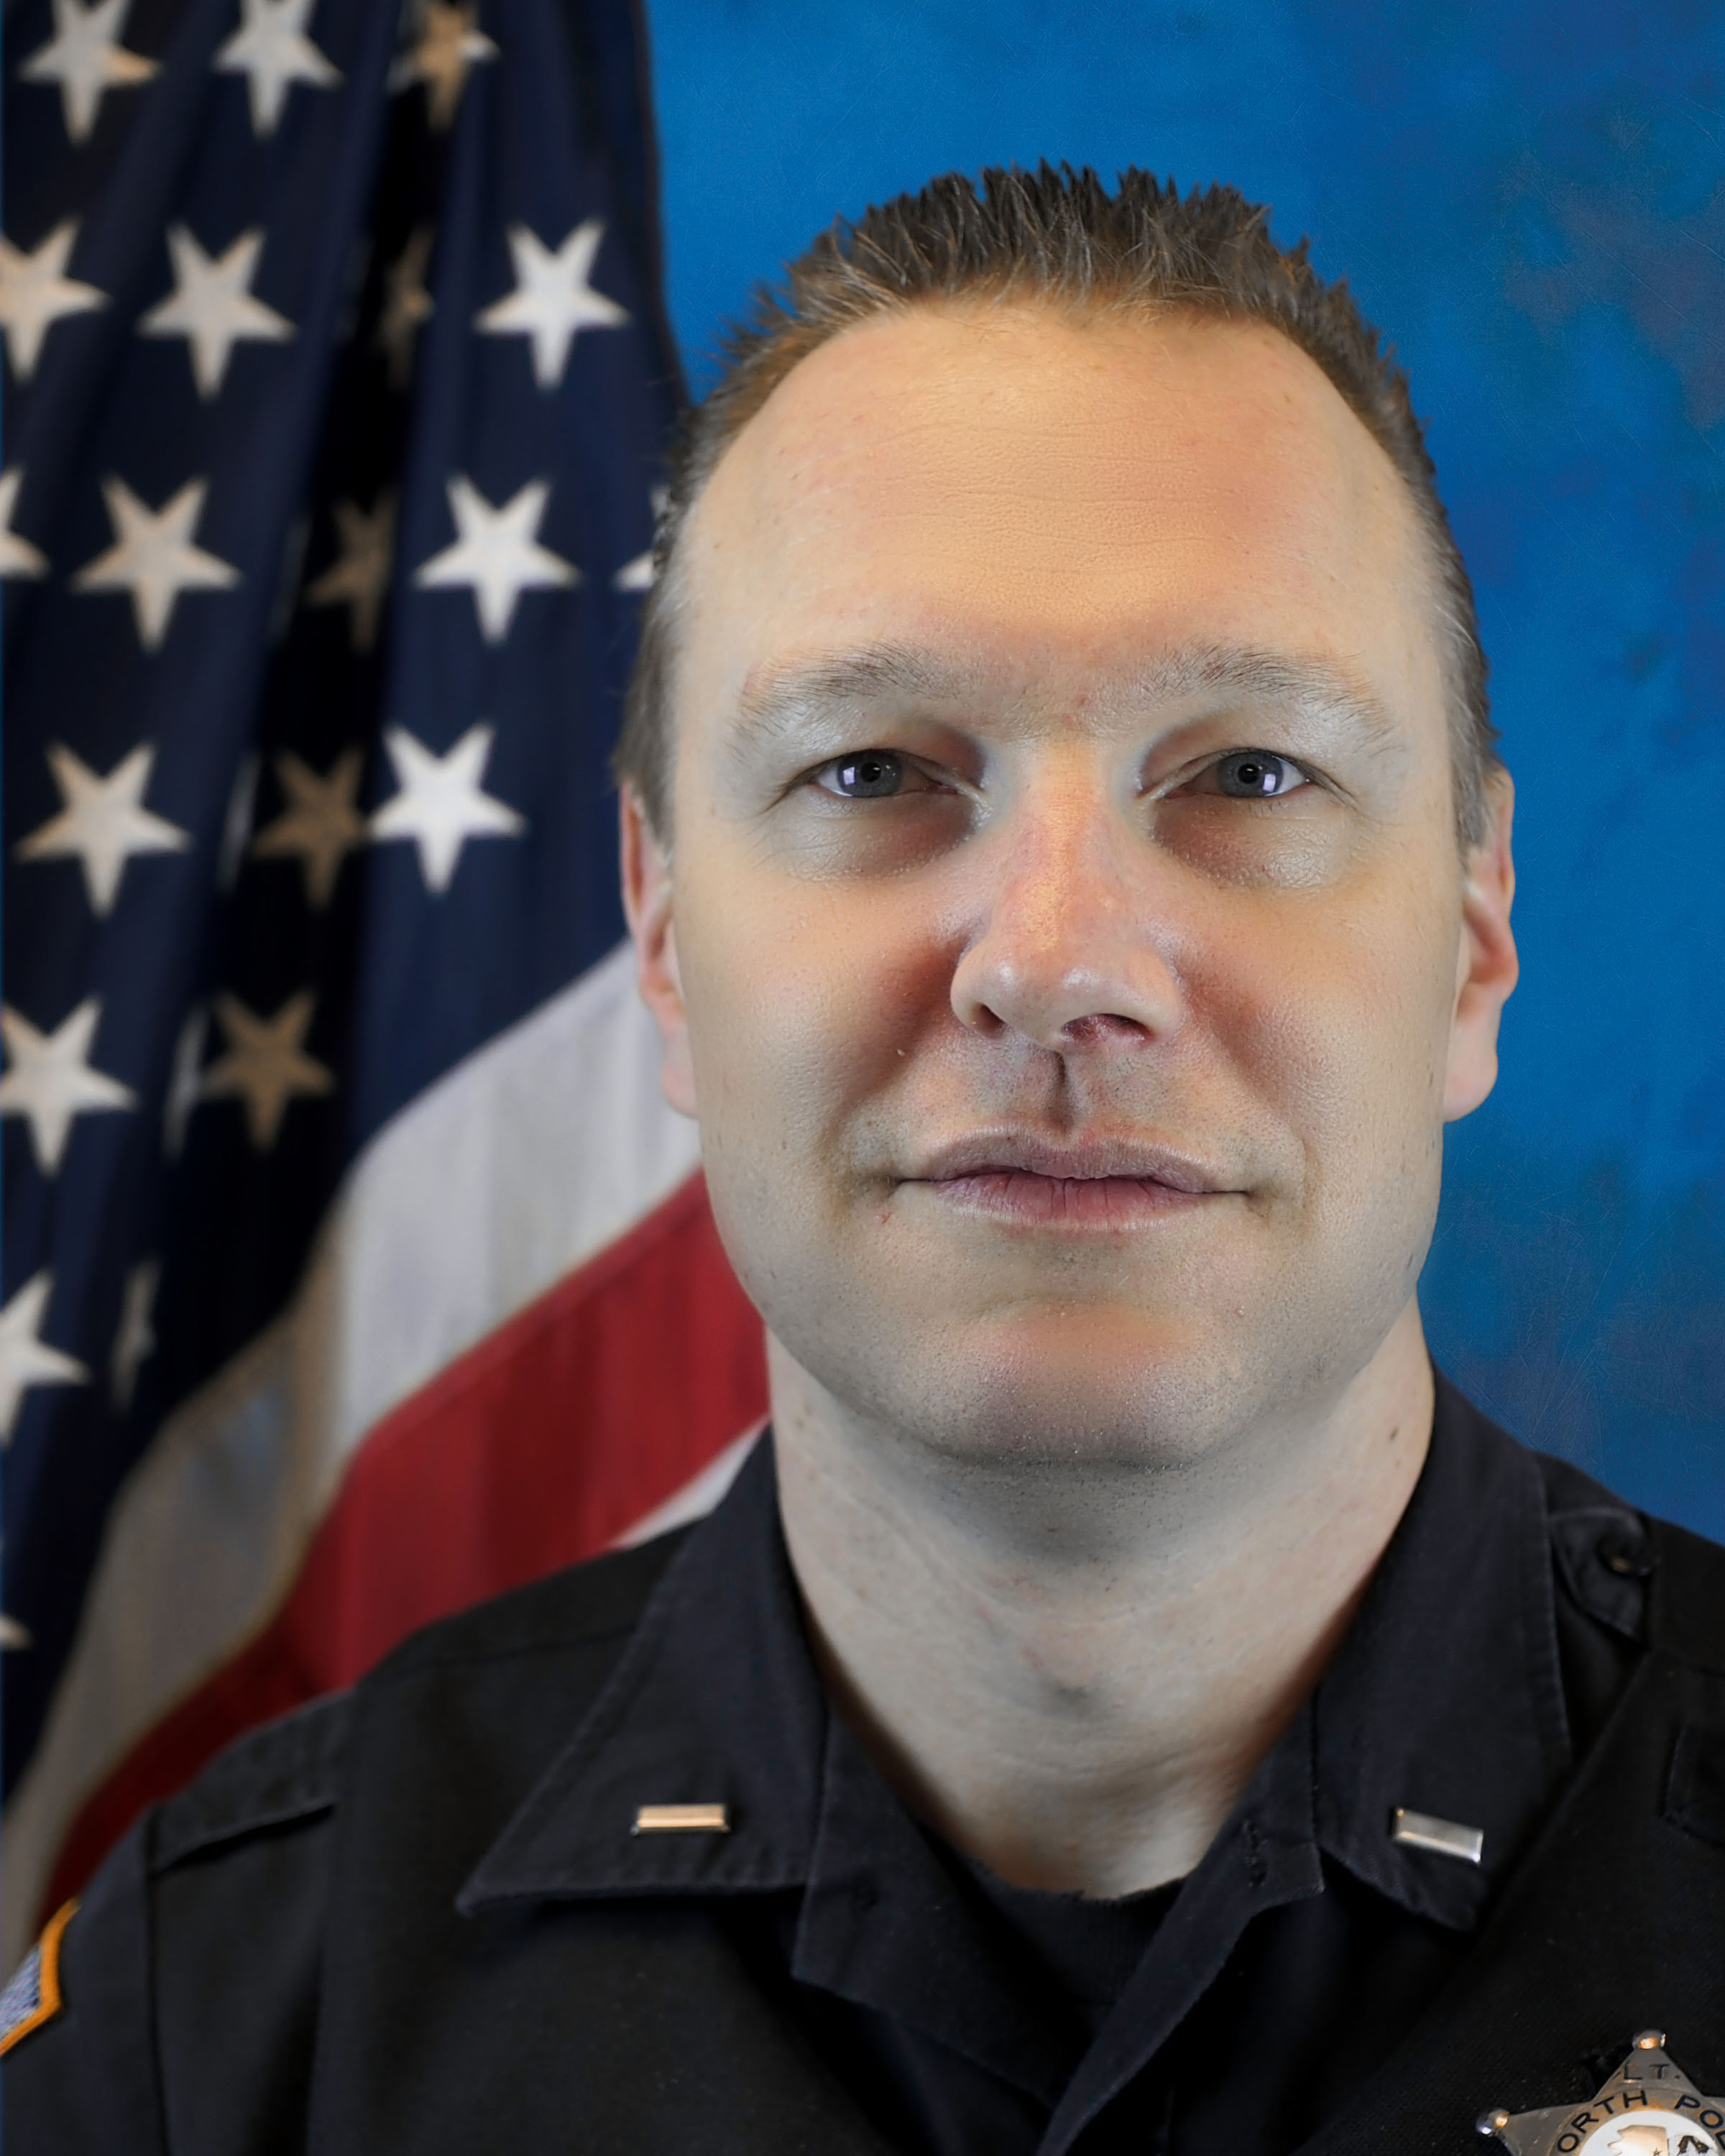 "Lieutenant Chad Rathbun     North Pole Police Department    Lt. Rathbun has a proven track record of exceptional commitment to the safety of the community. He was instrumental in securing the apprehension and incarceration of a career deviant criminal who jumped state lines to avoid being monitored. Although the case seemed benign to some, it was Lt. Rathbun's investigation that uncovered a sex offender registration violation in another state and what appeared to be serial criminal behavior in multiple states. He led the investigation and forwarded charges on this individual so that he was charged and convicted of crimes related to this incident.  Lt. Rathbun did not let it go there.  He followed the movements of this individual, and discovered he was violating in another state and was in contact with children. Lt. Rathbun reached out and made sure the authorities in that jurisdiction were aware, which led to the individual being apprehended. According to Sr. Inspector Lisa Norbert with the DEA, Lt. Rathbun's work in the investigation ""was critical in showing the federal judge in Washington that the culprit is continuing his deviant behavior and is a danger to the community; resulting in his detention."" We are confident that this predator would have continued unnoticed had Lt. Rathbun not pursued this repeat offender.  We do not often see this sort of above and beyond behavior from officers once a violator leaves the area. Lt. Rathbun is passionate about protecting children from predators and it is apparent that his actions saved other children from a lifetime of emotional trauma."